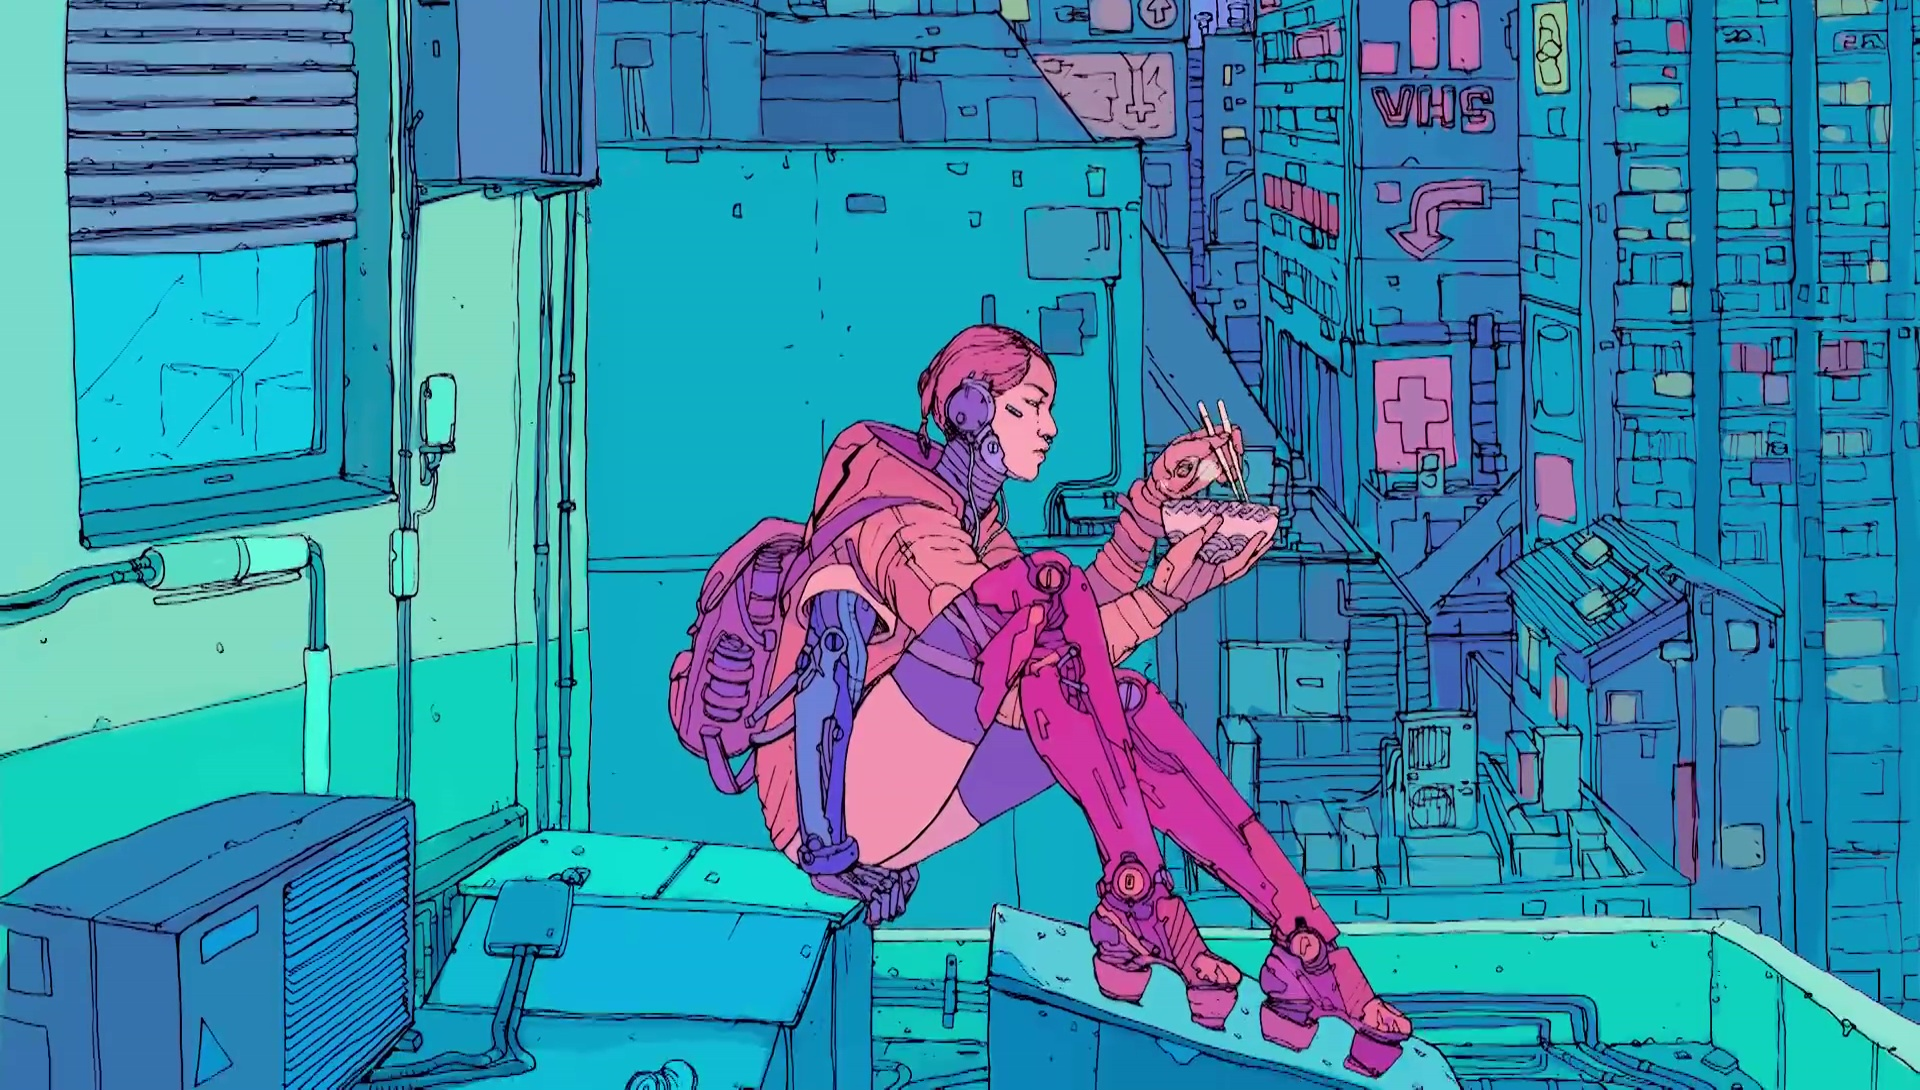 ArtFutura 2016 - Josan - The Future is Now